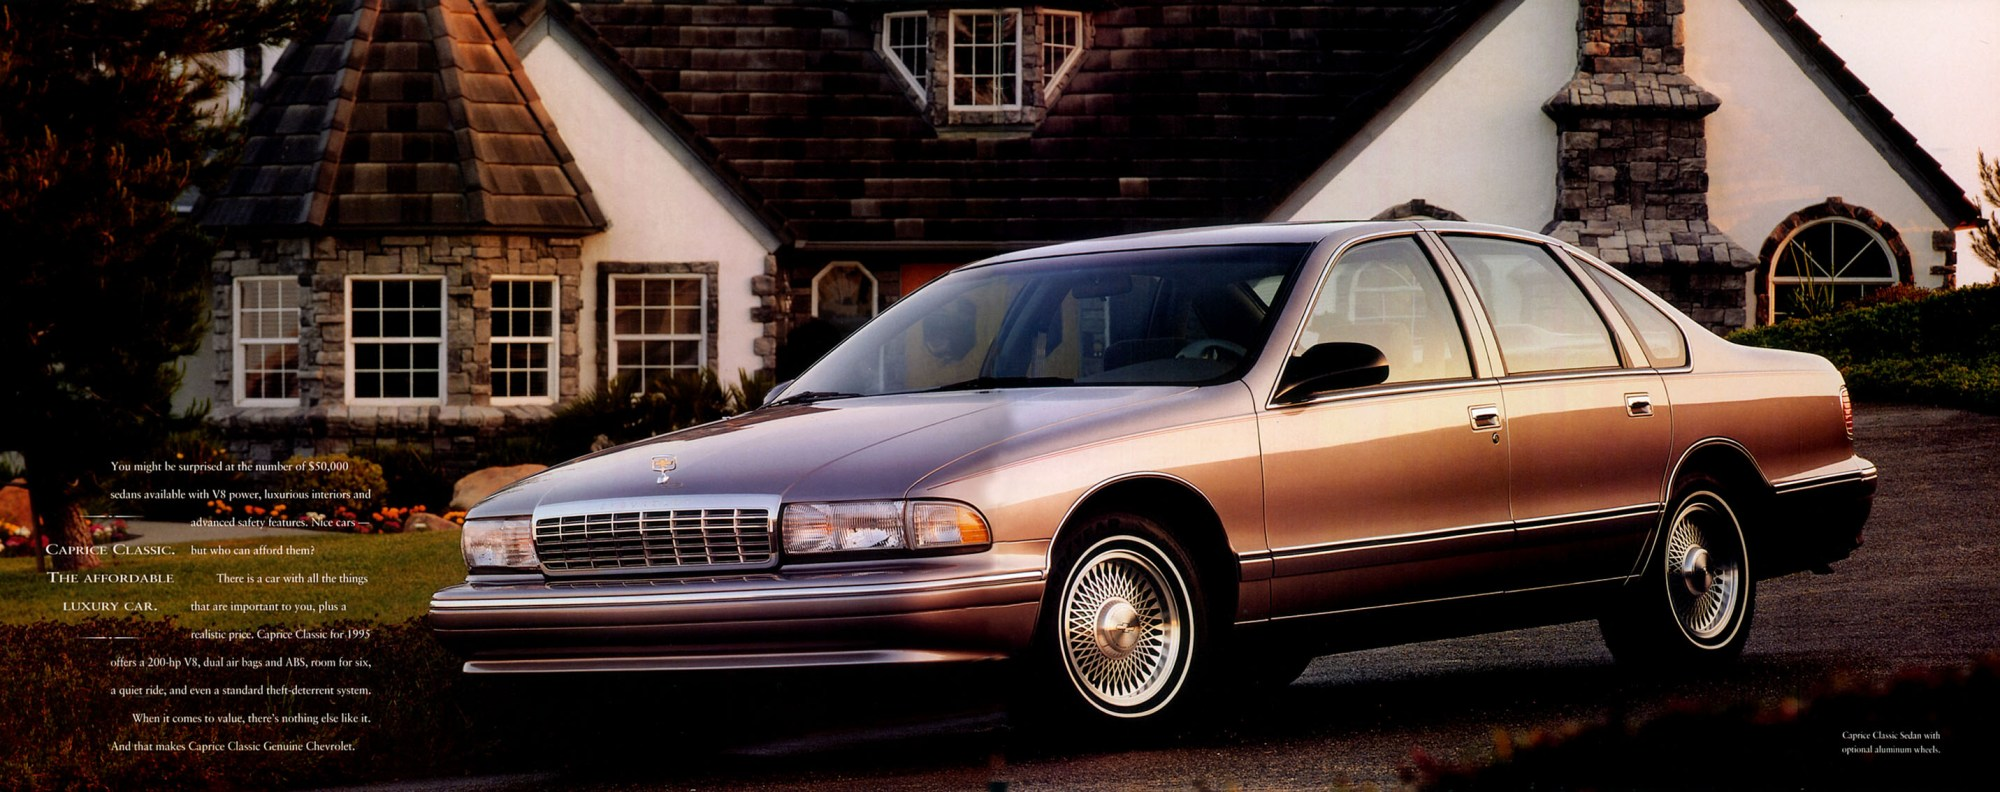 hight resolution of 1995 chevrolet caprice classic